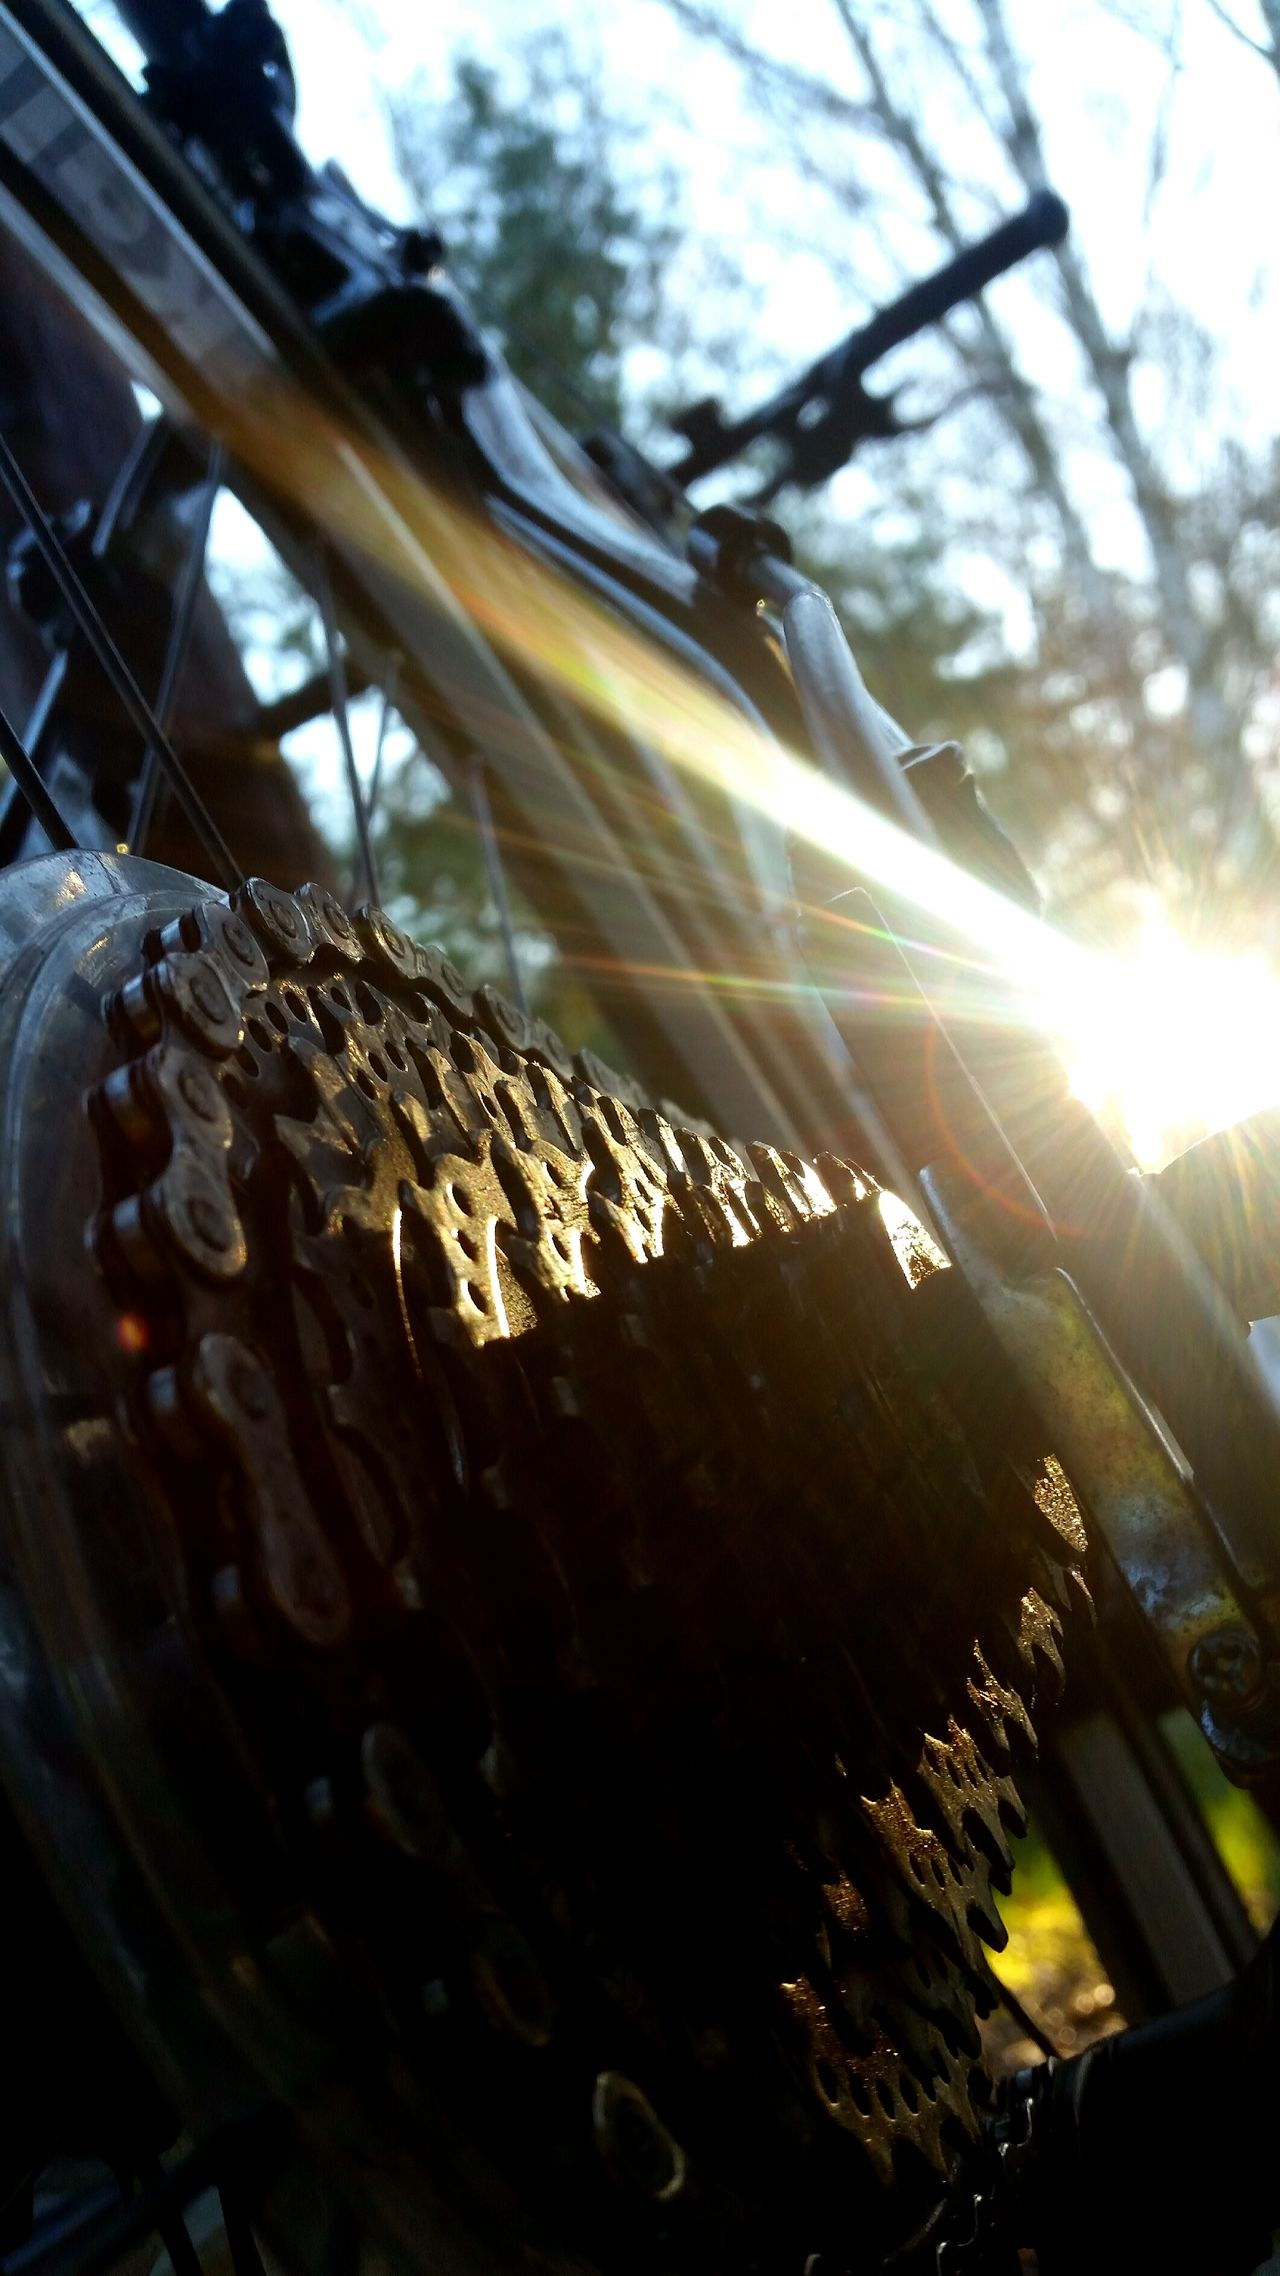 Sunlight Lens Flare Sunbeam Sun Close-up Low Angle View No People Sky Nature Outdoors Day Fahrradtour Bicycle